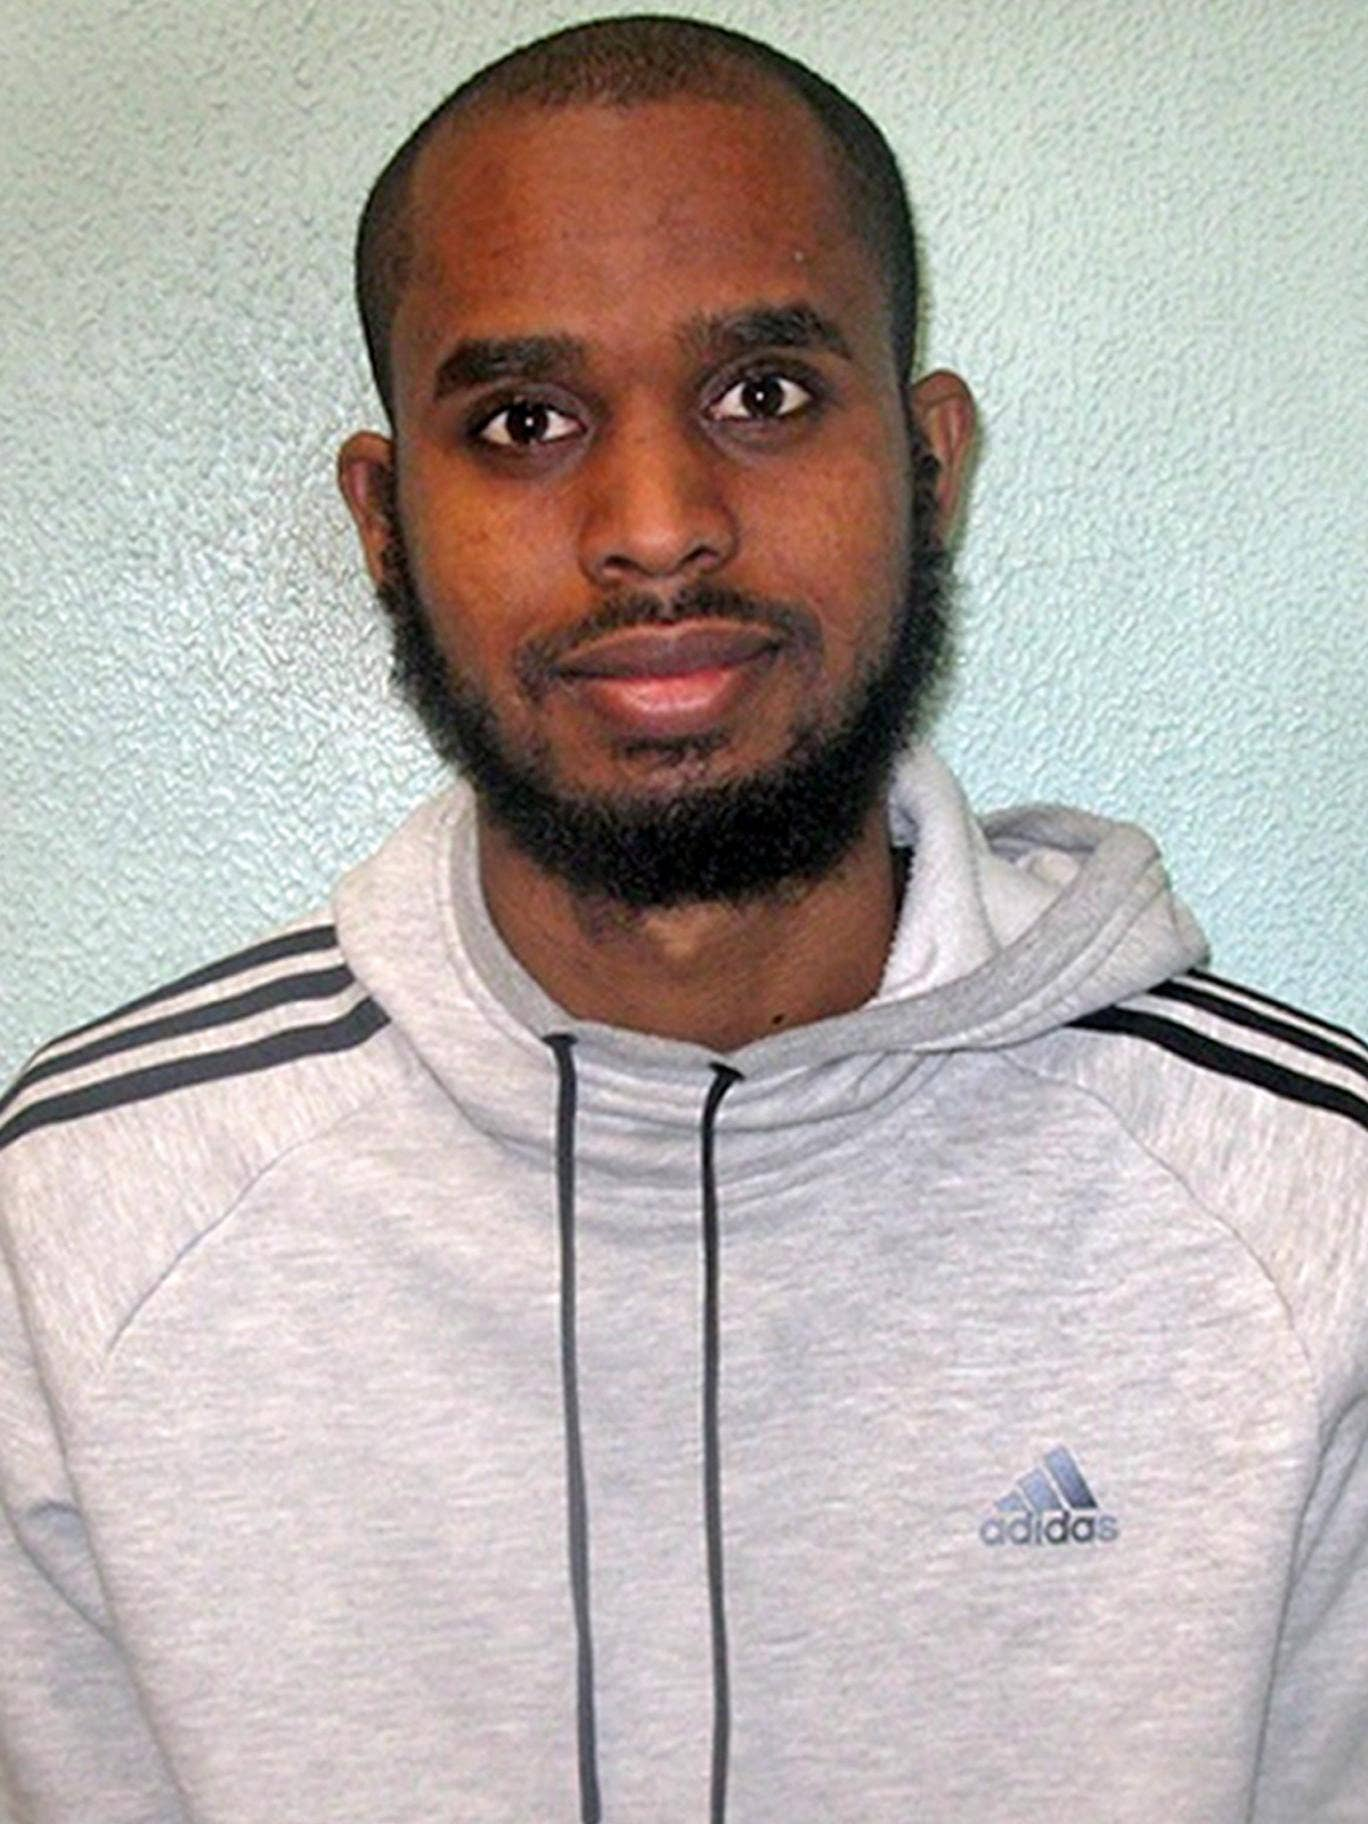 Ibrahim Magag was last seen on Boxing Day